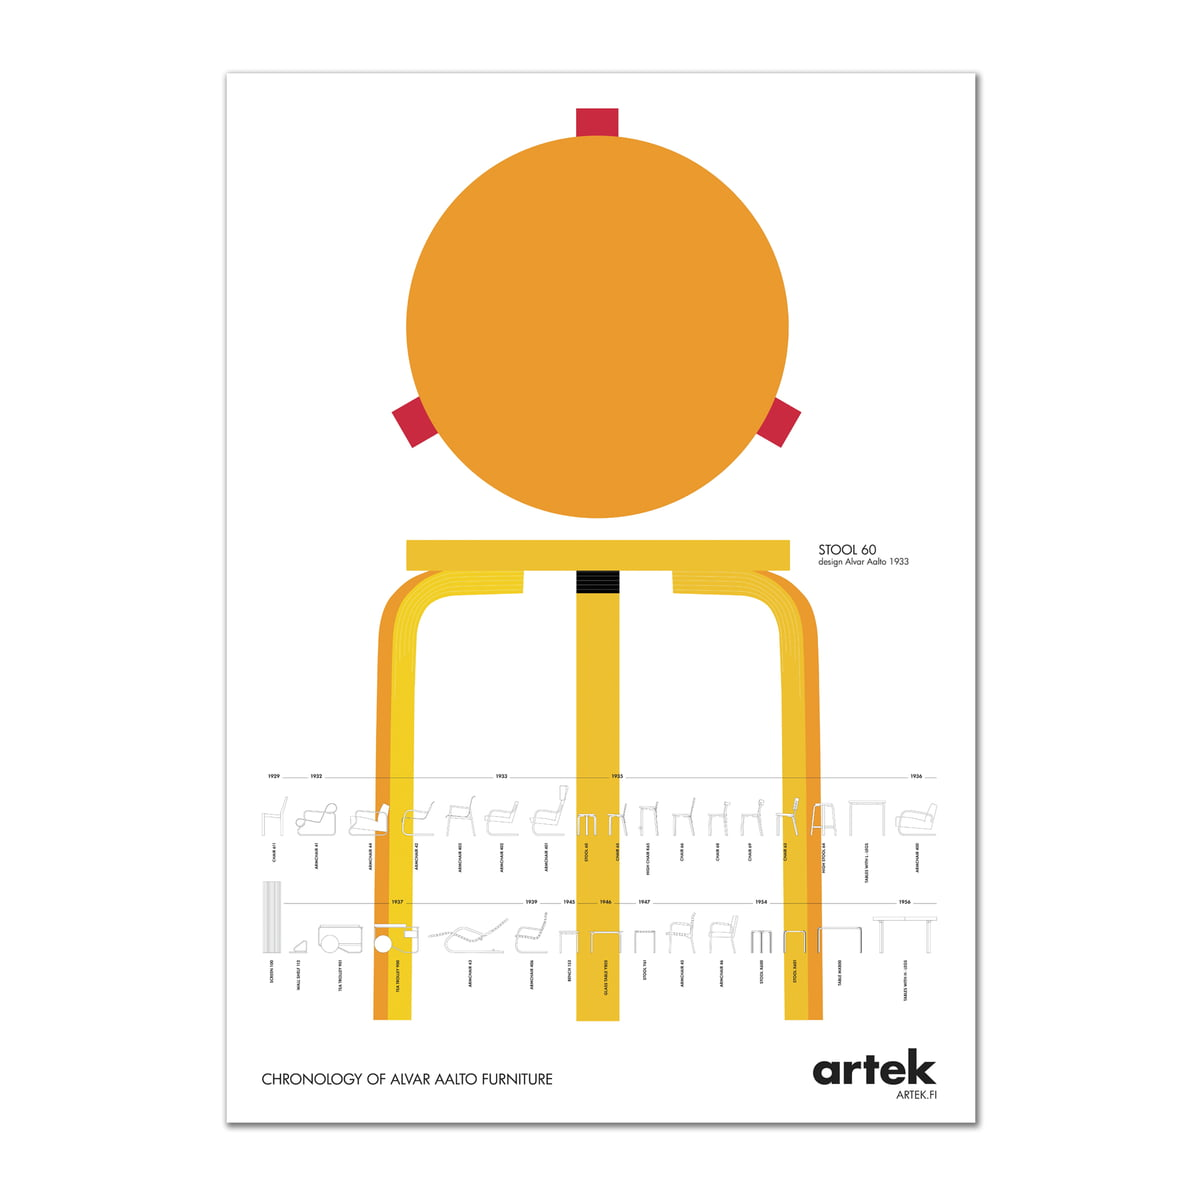 the poster stool 60 by artek